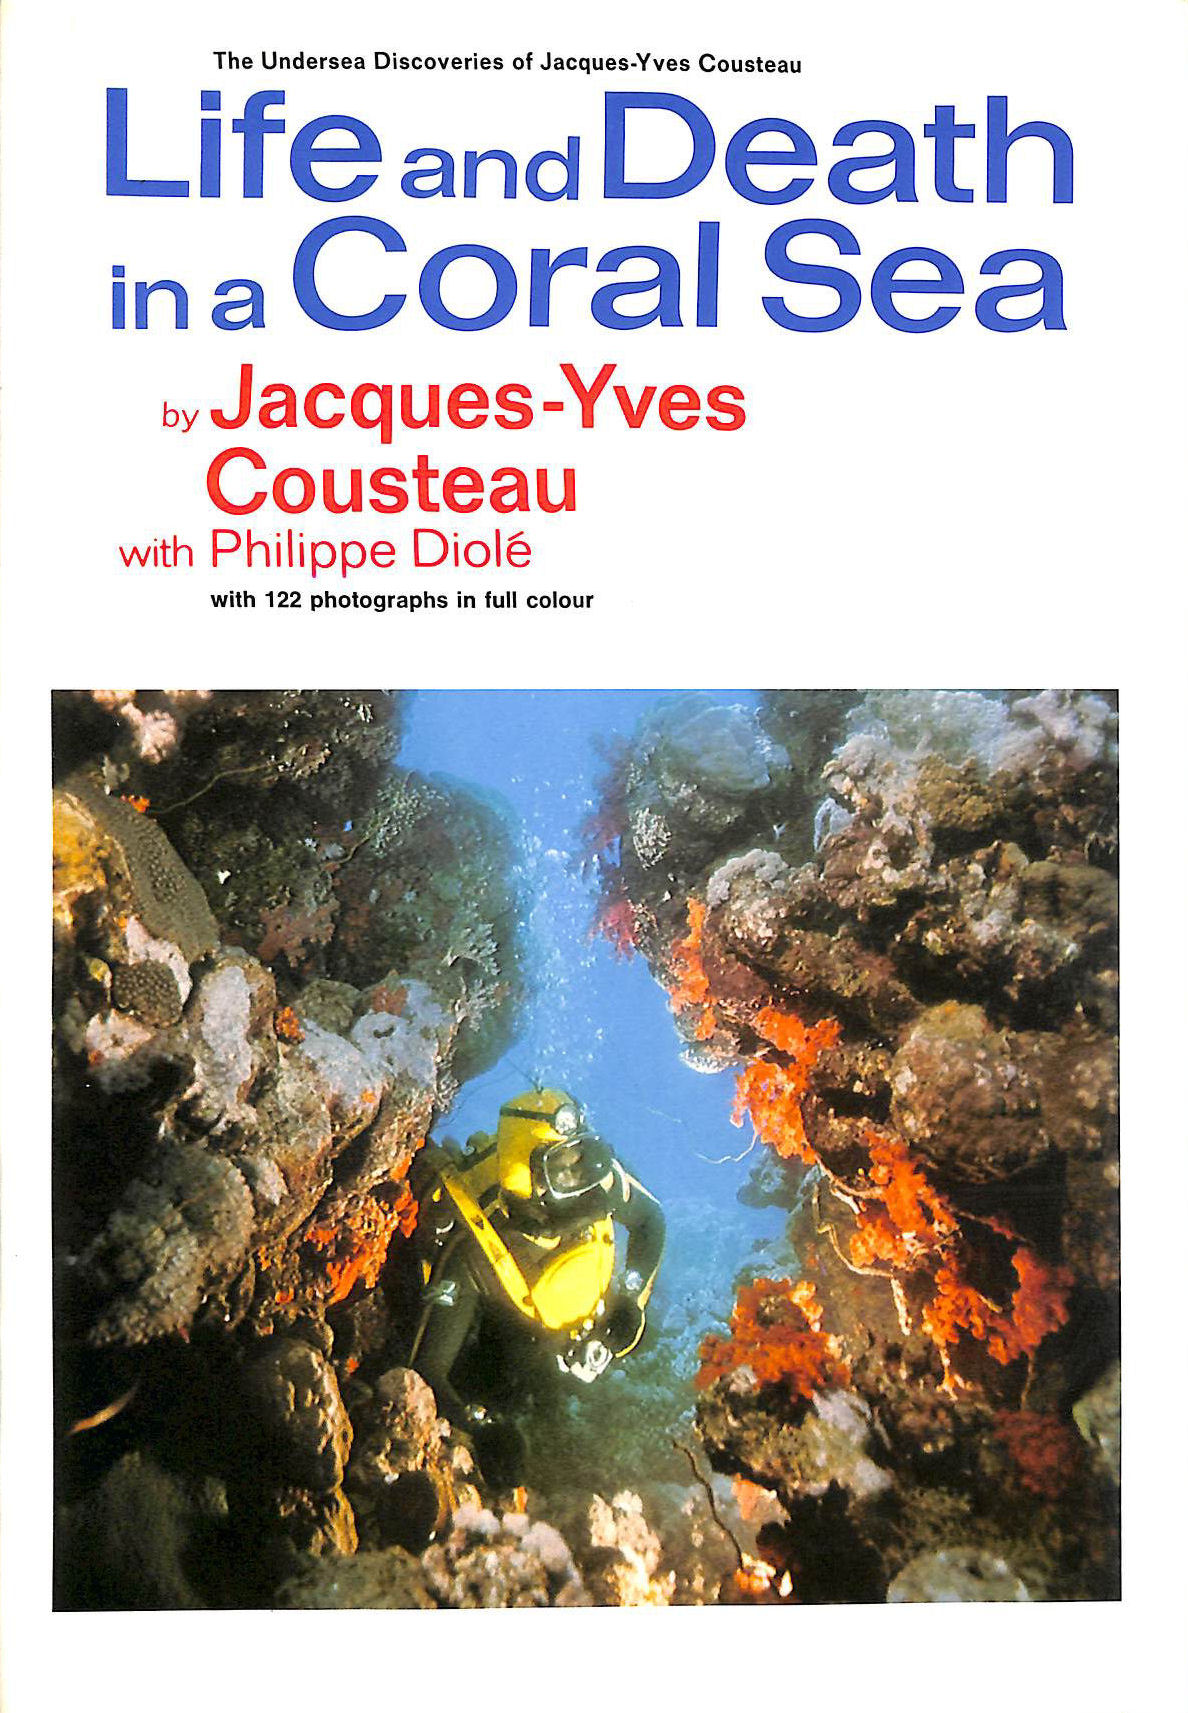 Image for Life and Death in a Coral Sea (The undersea discoveries of Jacques-Yves Cousteau)